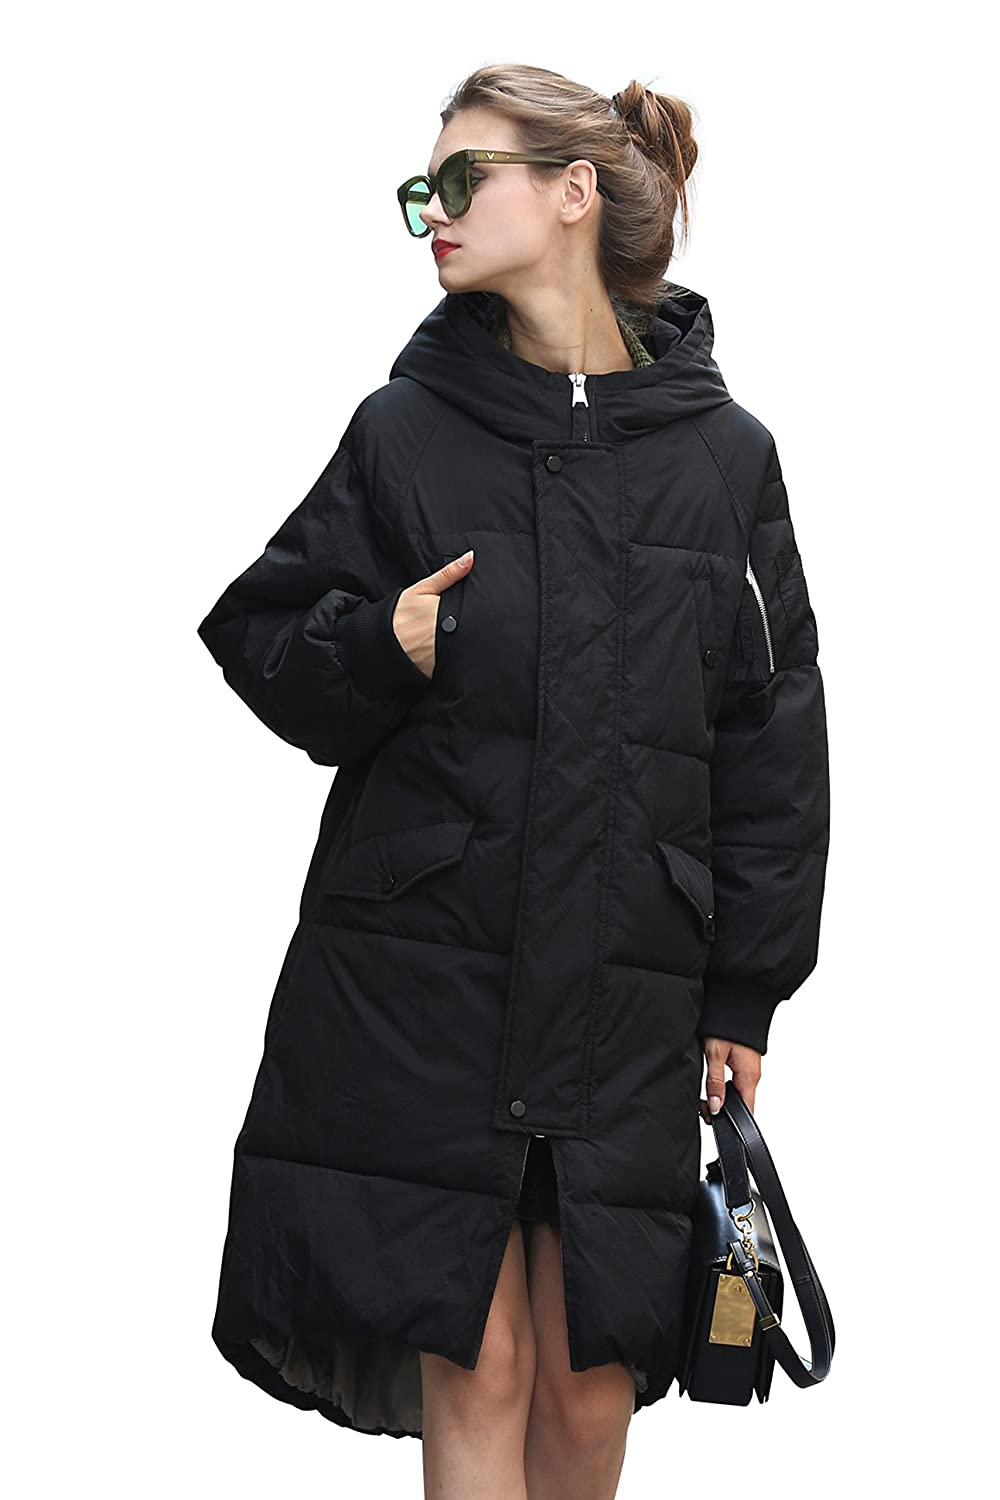 Jacket Coat Women Winter Top Long Coat Women Winter Down Waterproof Jacket Women Lightweight Puffer Spring Jacket Women Snow Long Sleeve Jacket Women ...